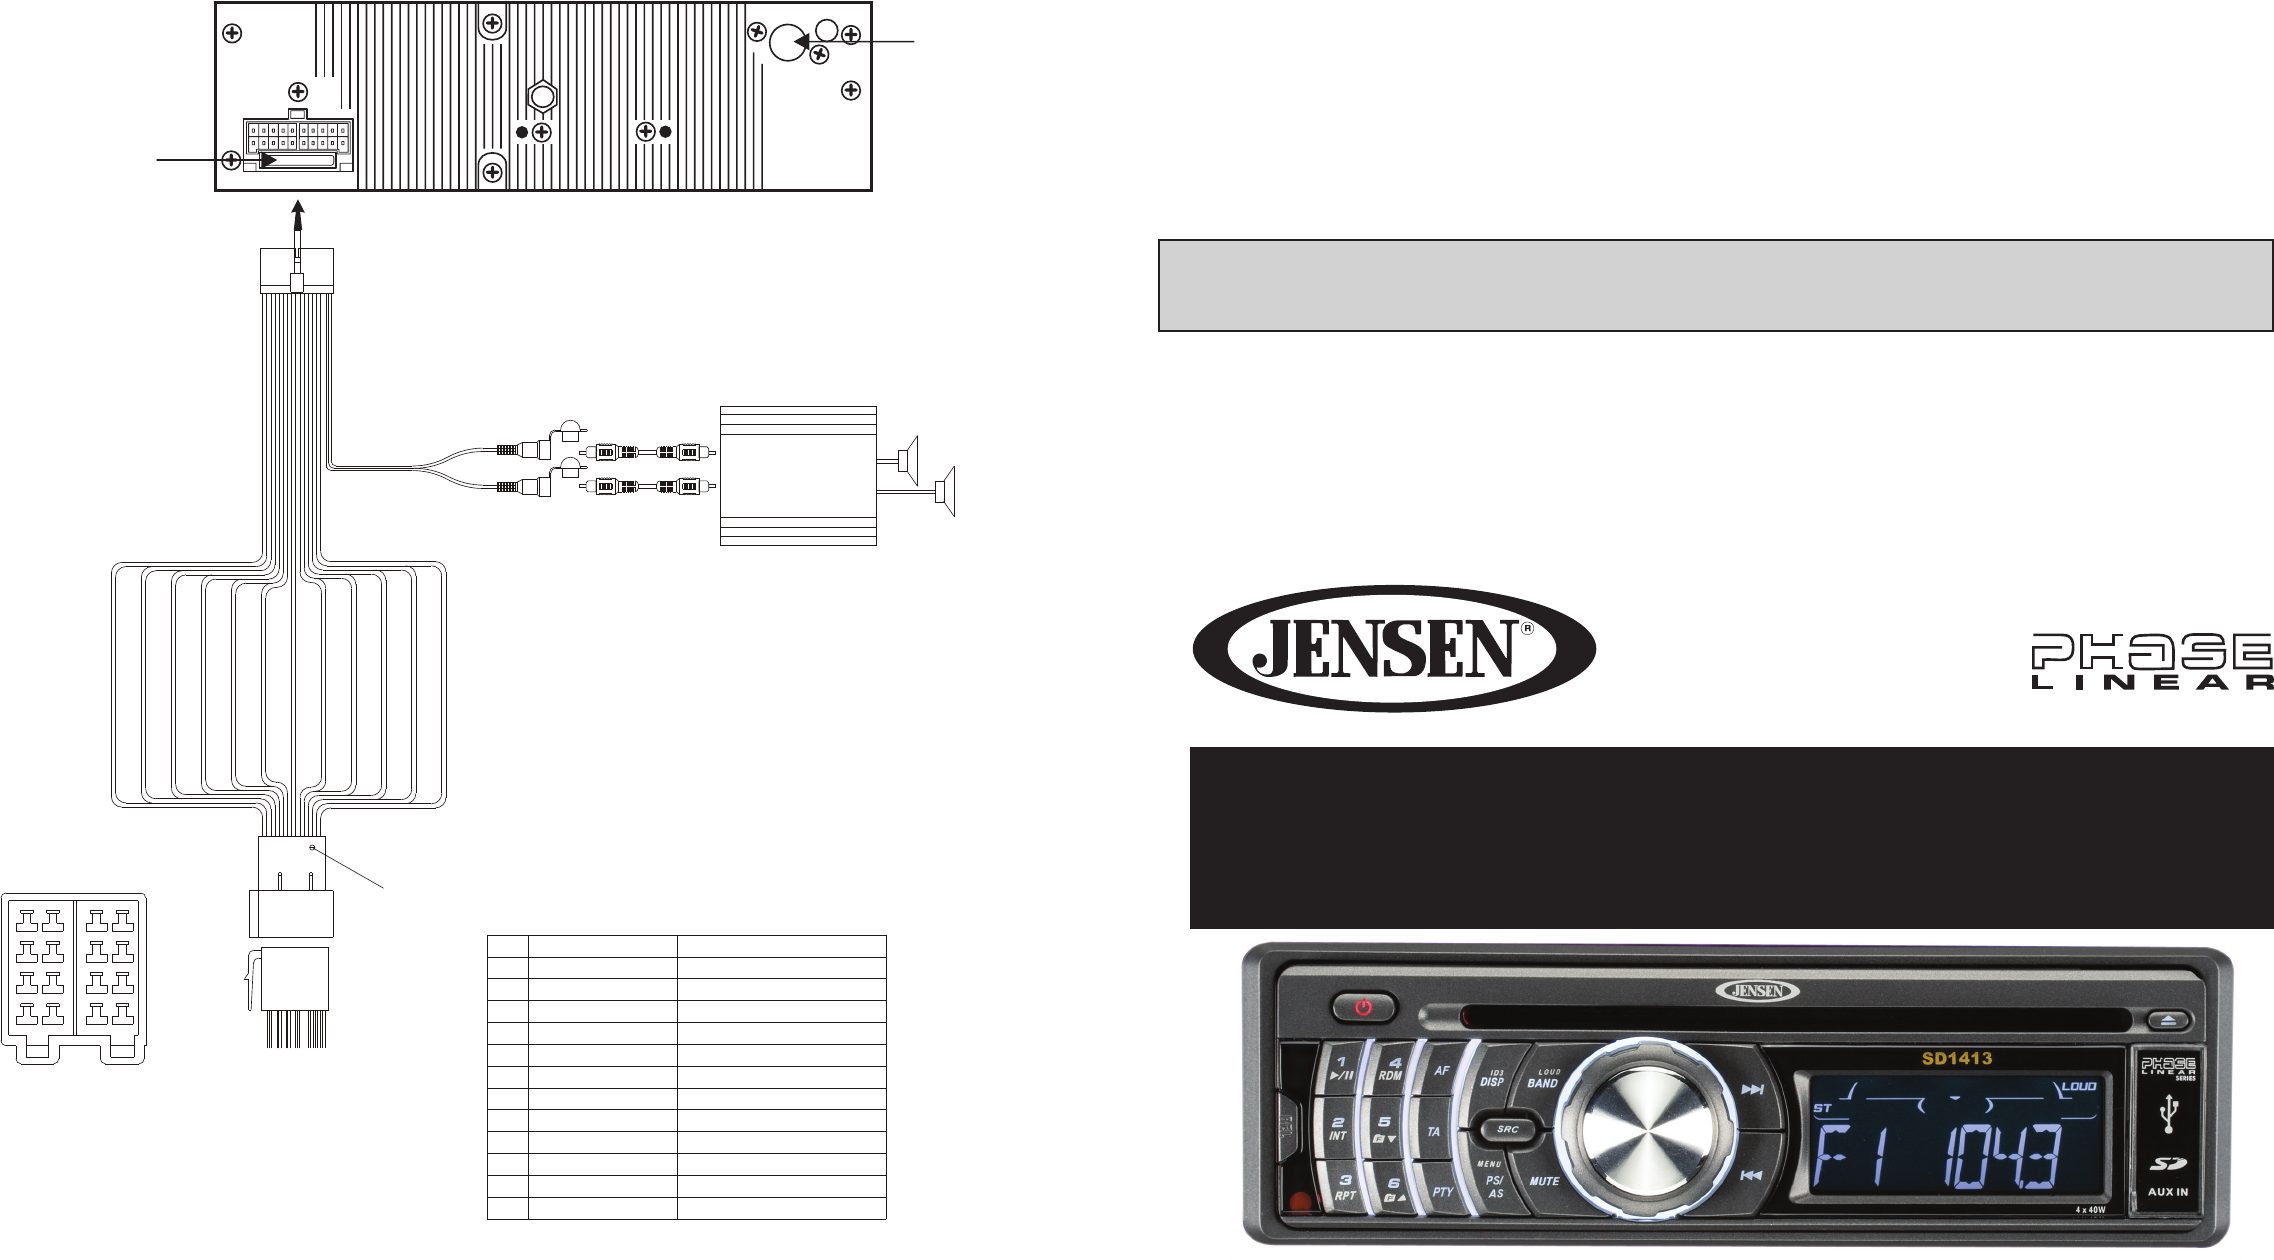 Jensen Car Stereo System Sd1413 User Guide Manualsonlinecom Uniden Marine Radio Wiring Diagram Manual